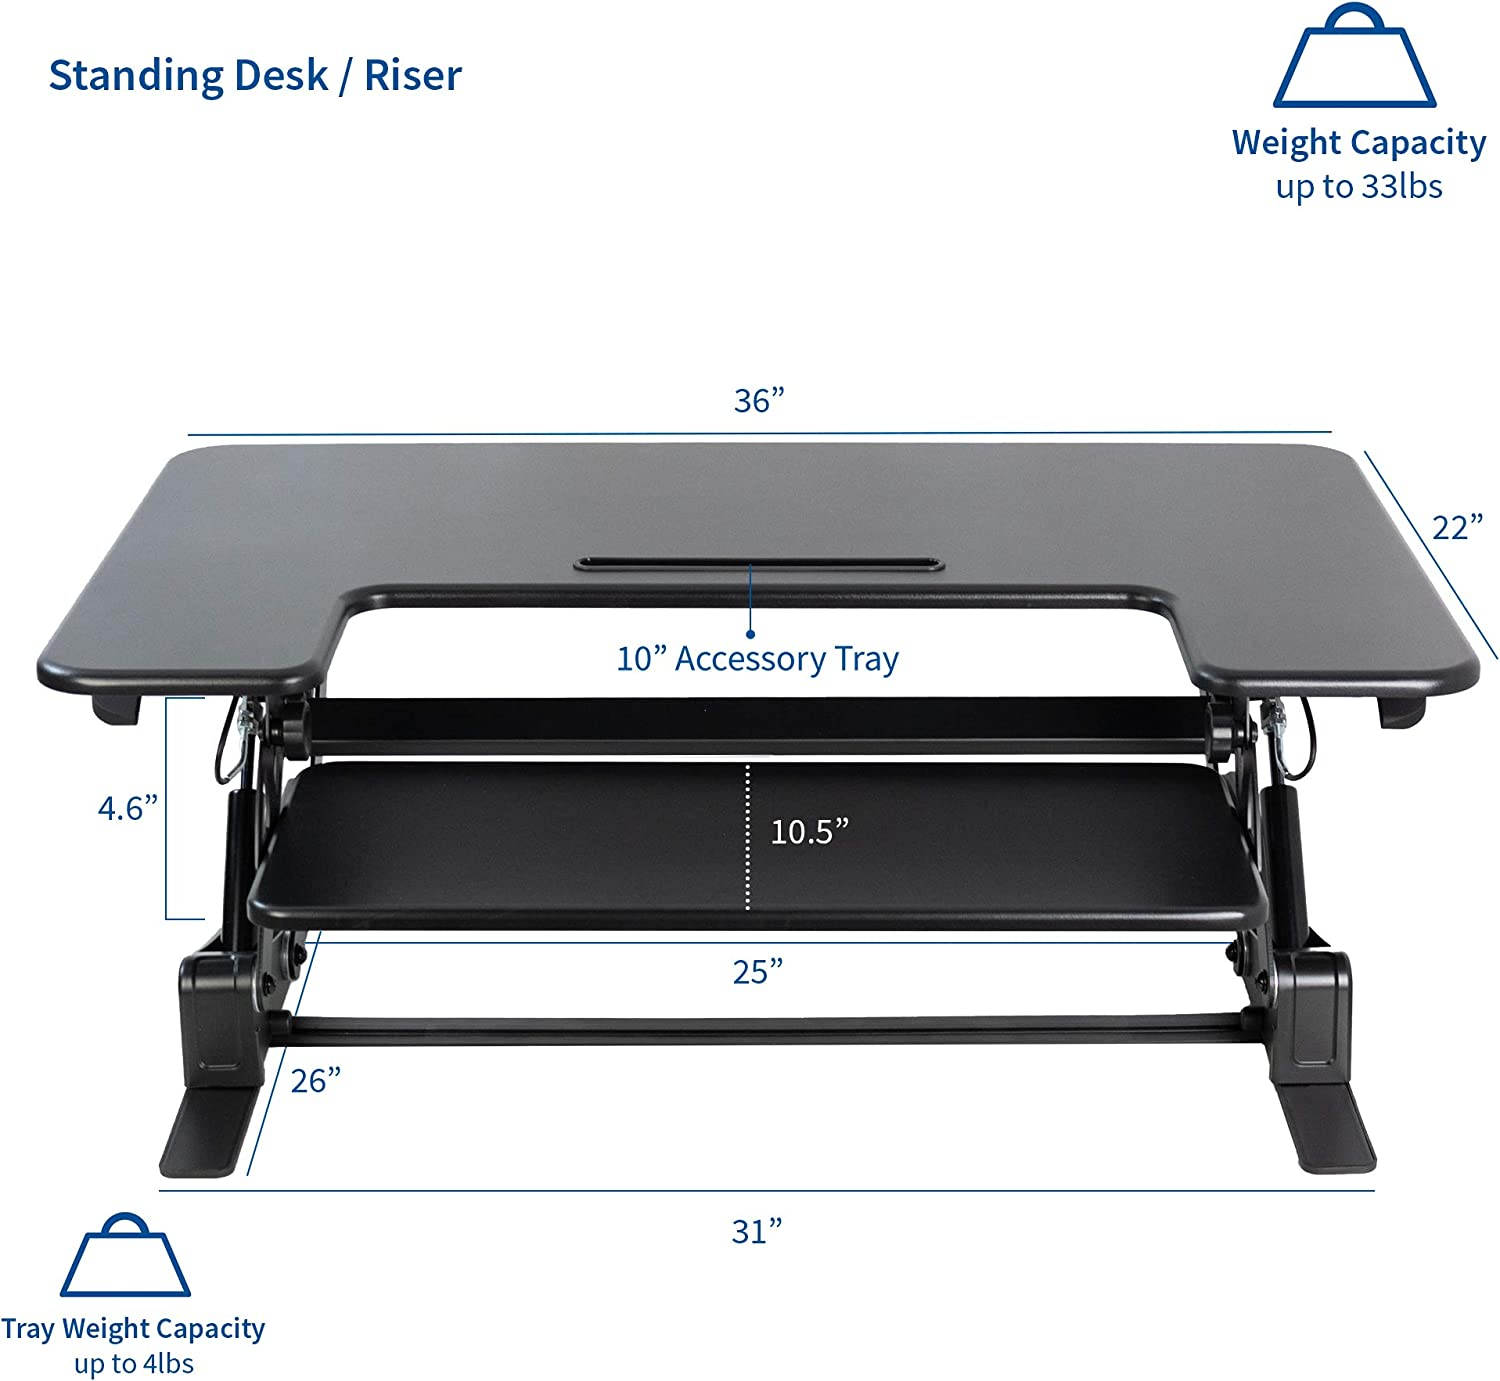 VIVO Black Height Adjustable 36 inch Stand up Desk Converter Quick Sit to Stand Tabletop Dual Monitor Riser DESK-V000V